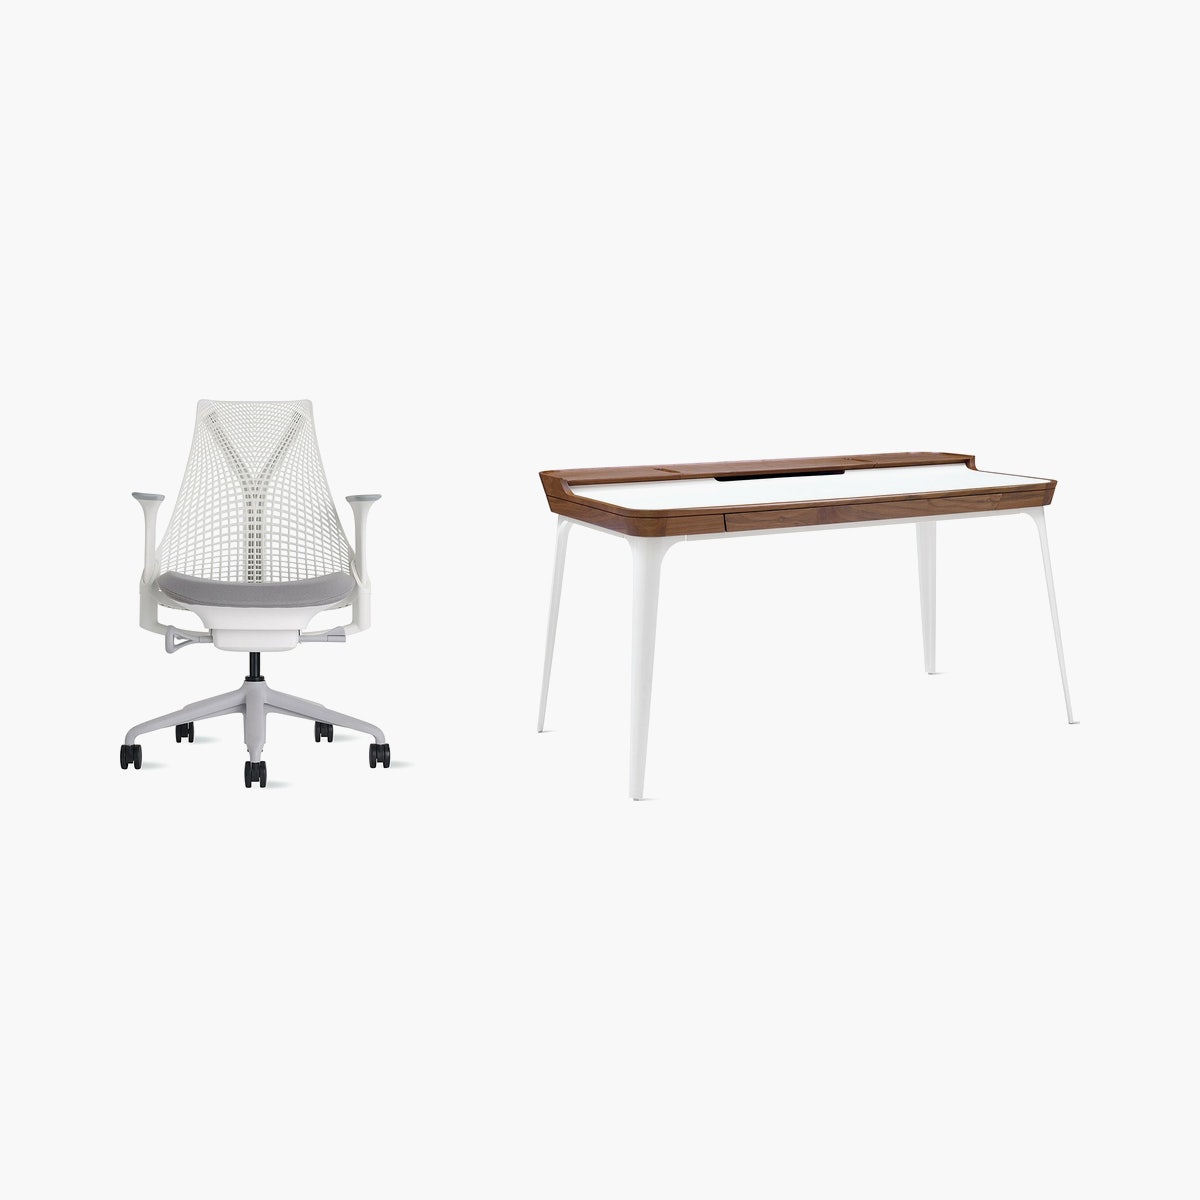 Sayl Chair / Airia Desk Office Bundle